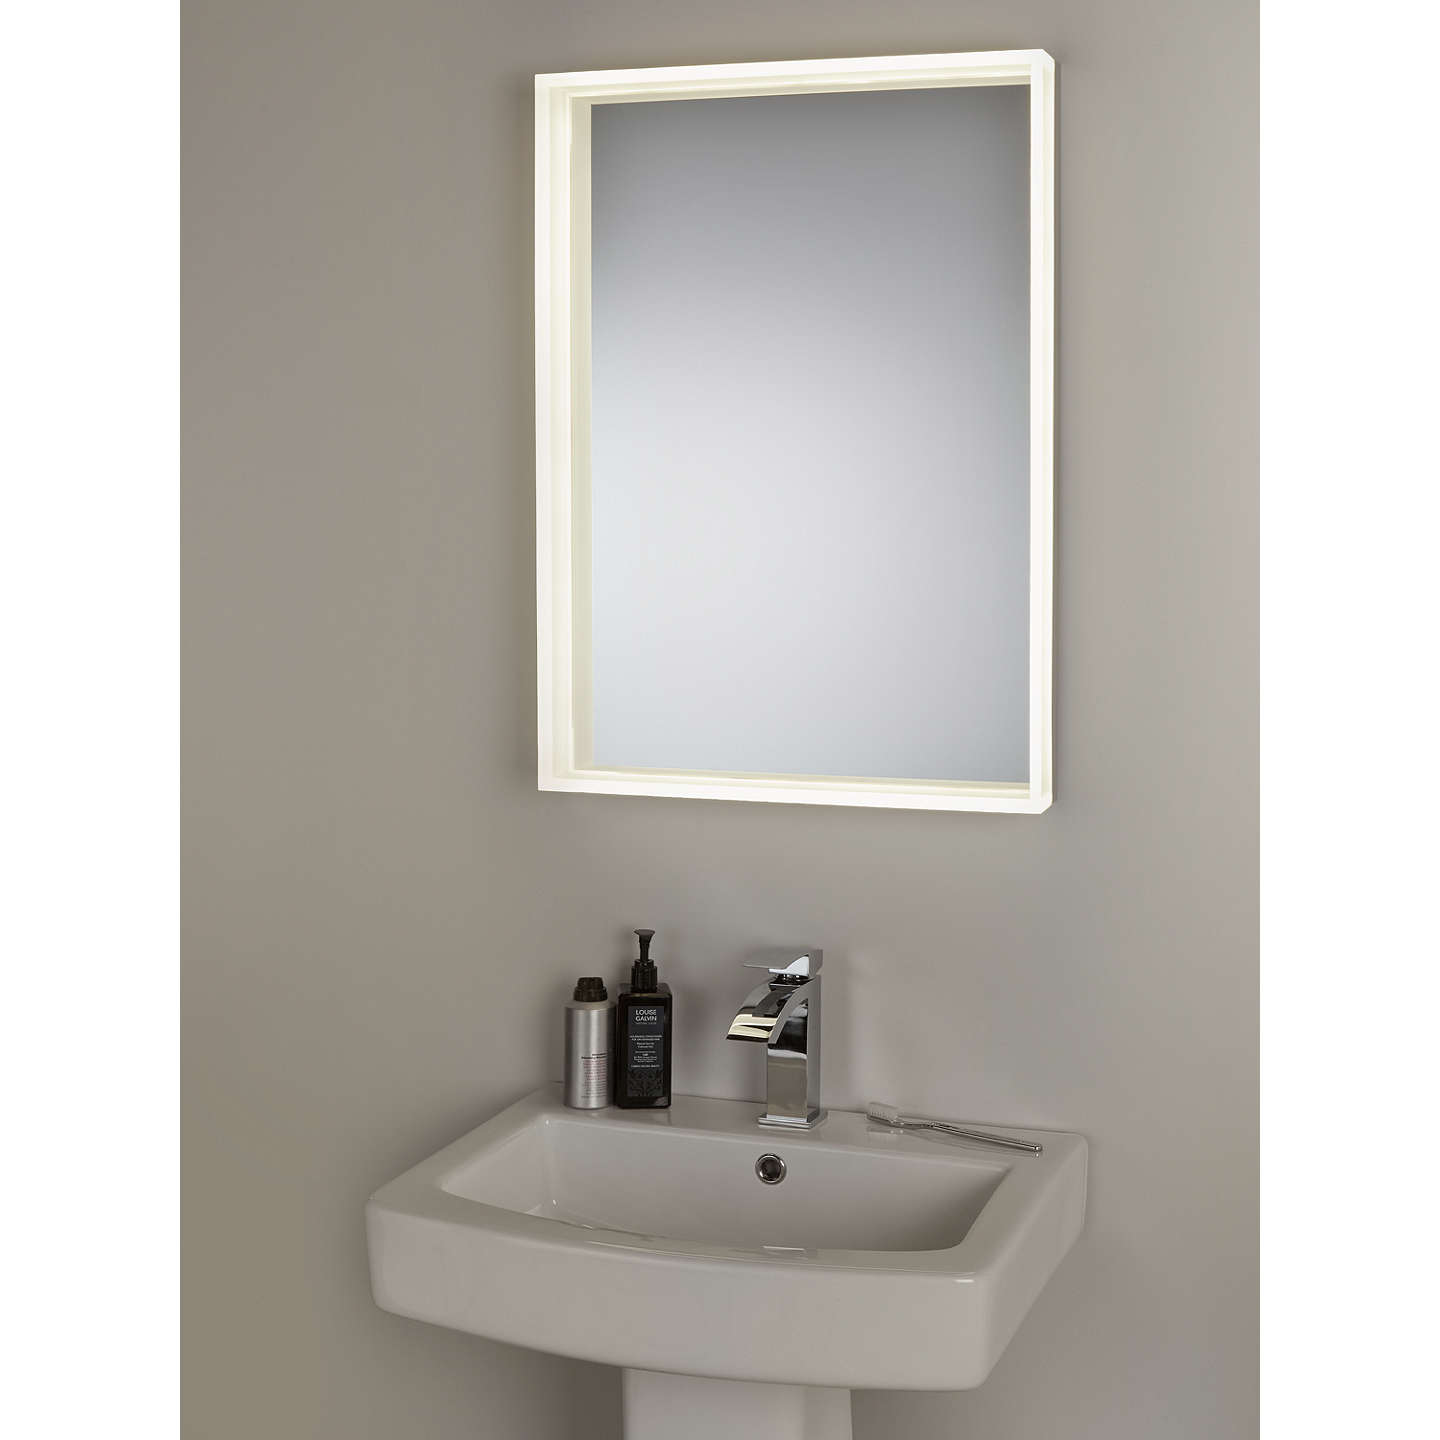 john lewis led prism illuminated bathroom mirror at john lewis. Black Bedroom Furniture Sets. Home Design Ideas